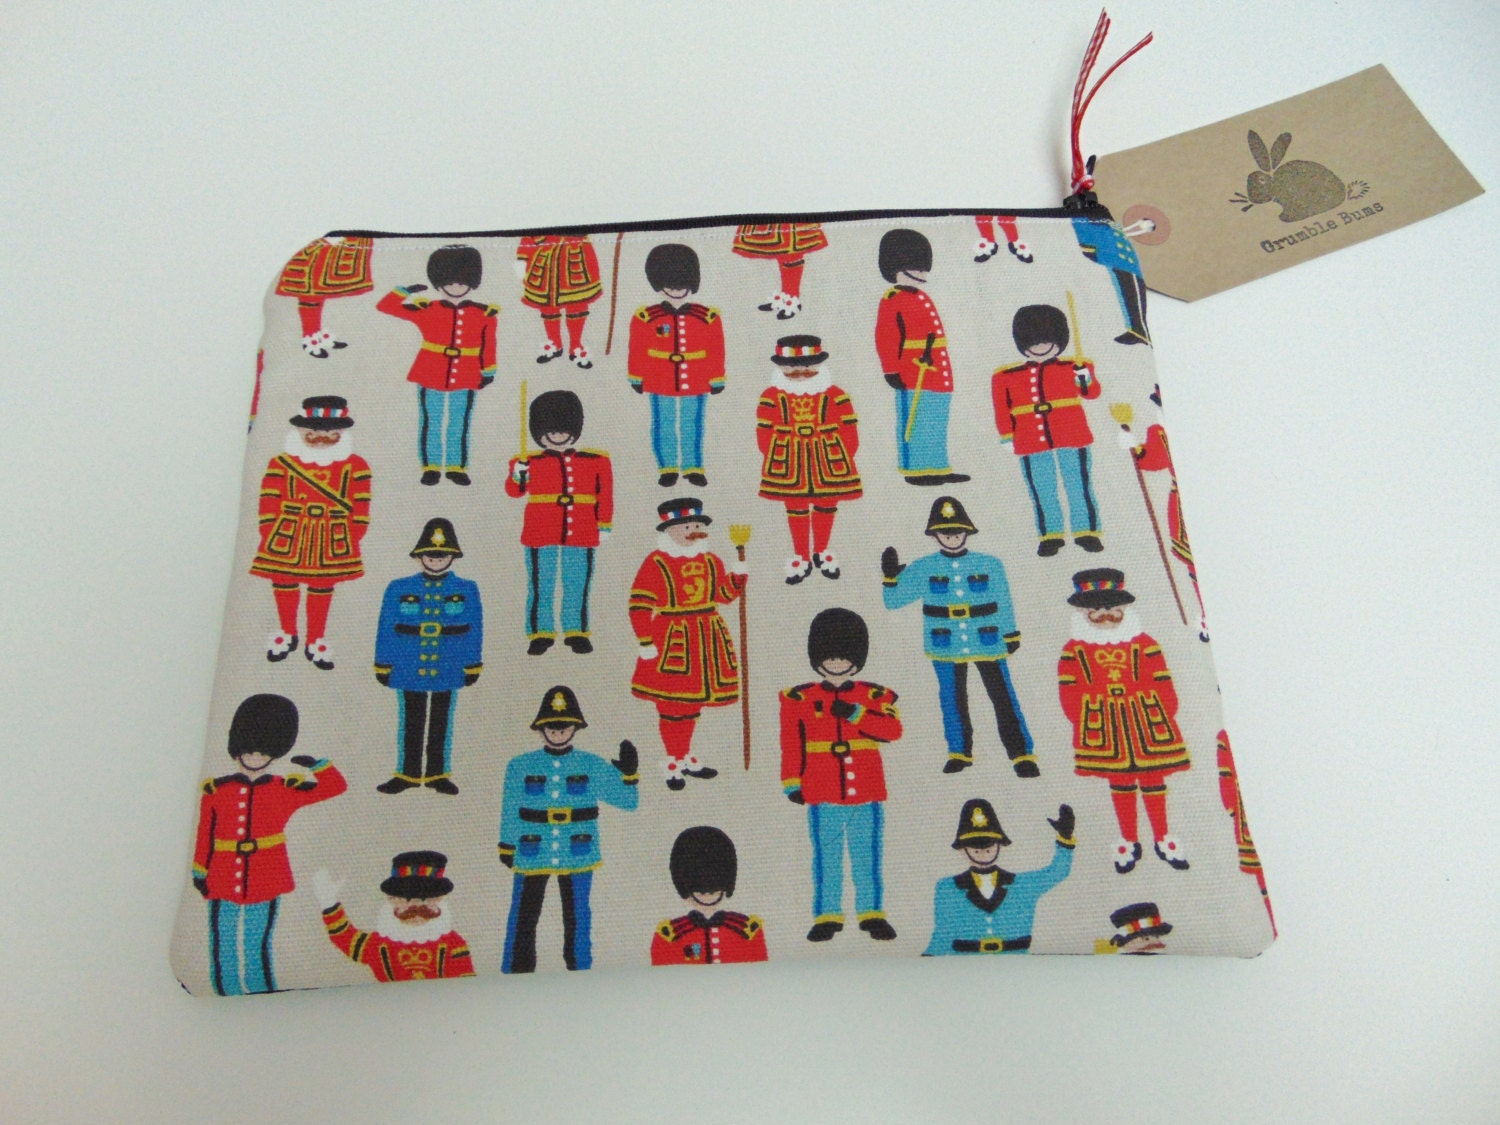 Handmade Makeup Bag Cath Kidston London Guards Police Beefeater Theme Fabric